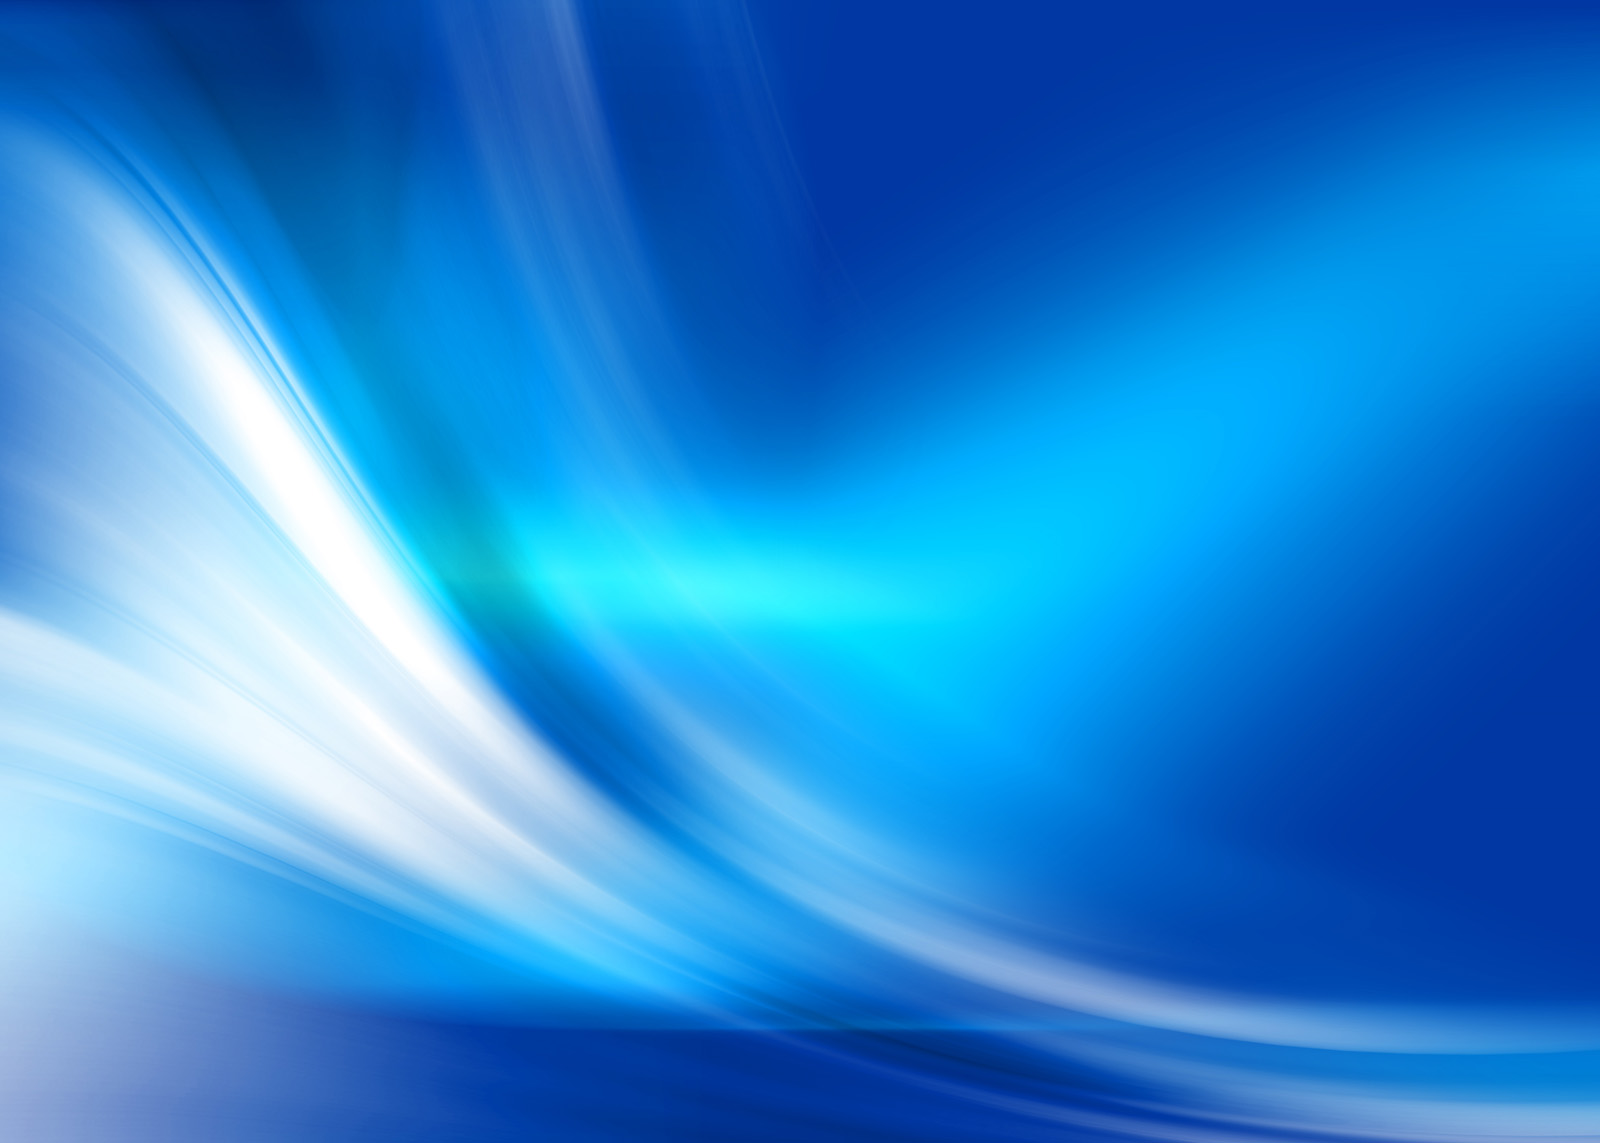 Blue background material 25851